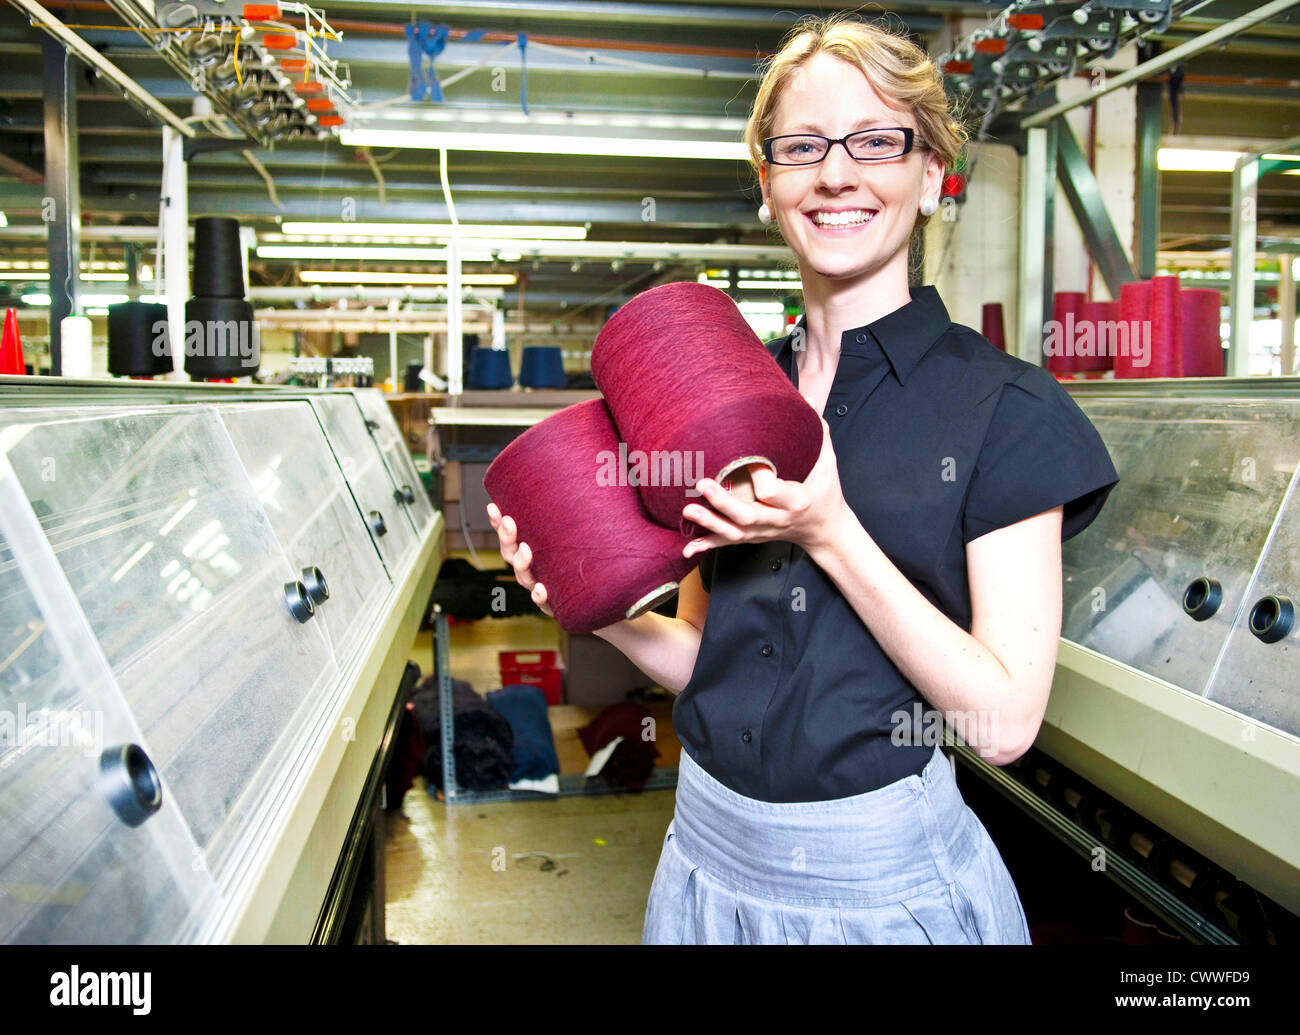 Worker with spools of thread in factory - Stock Image